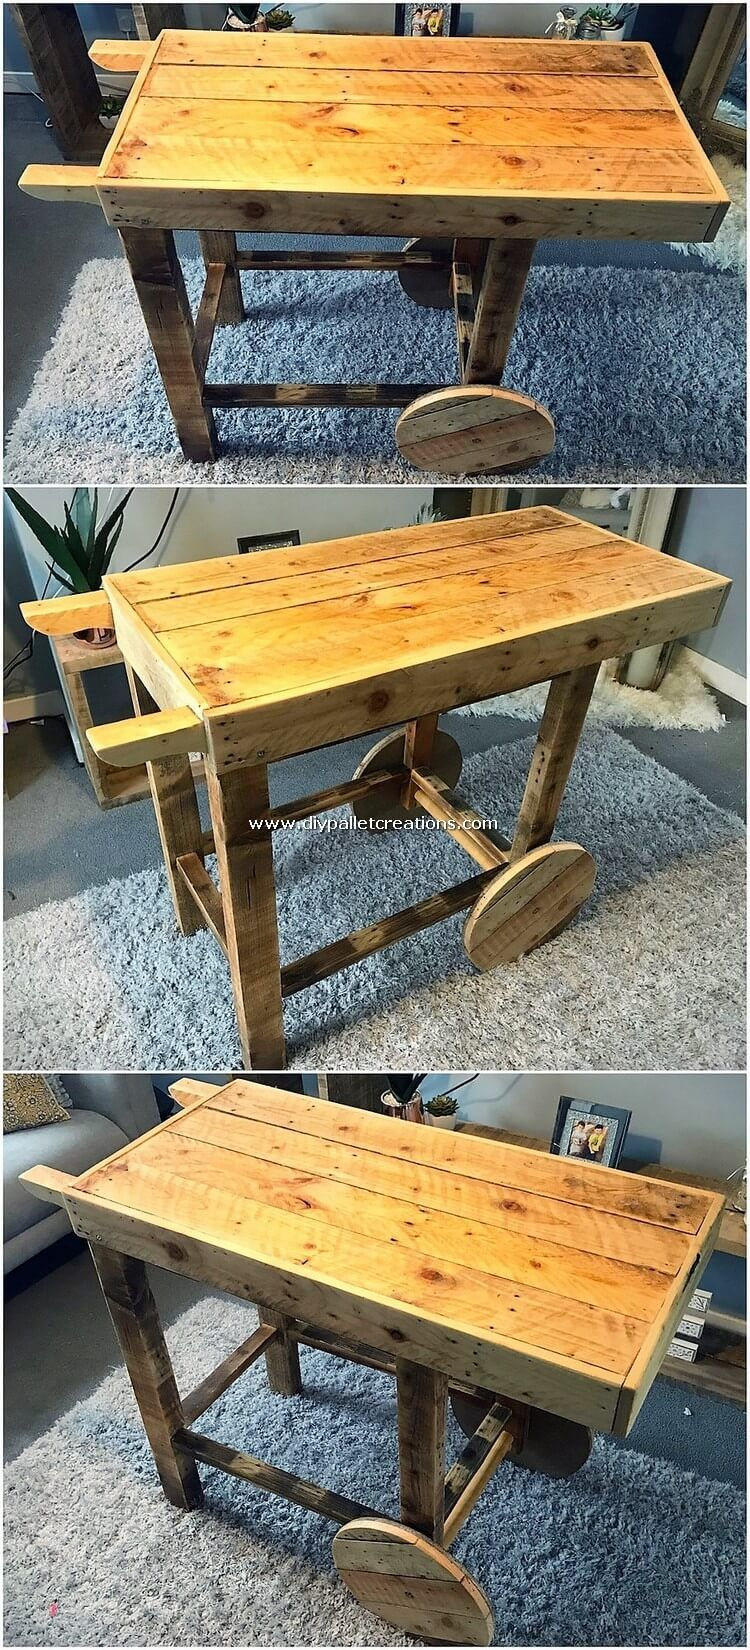 surprising diy ideas with old wood pallets pallet wood on extraordinary ideas for old used dumped pallets wood id=67551